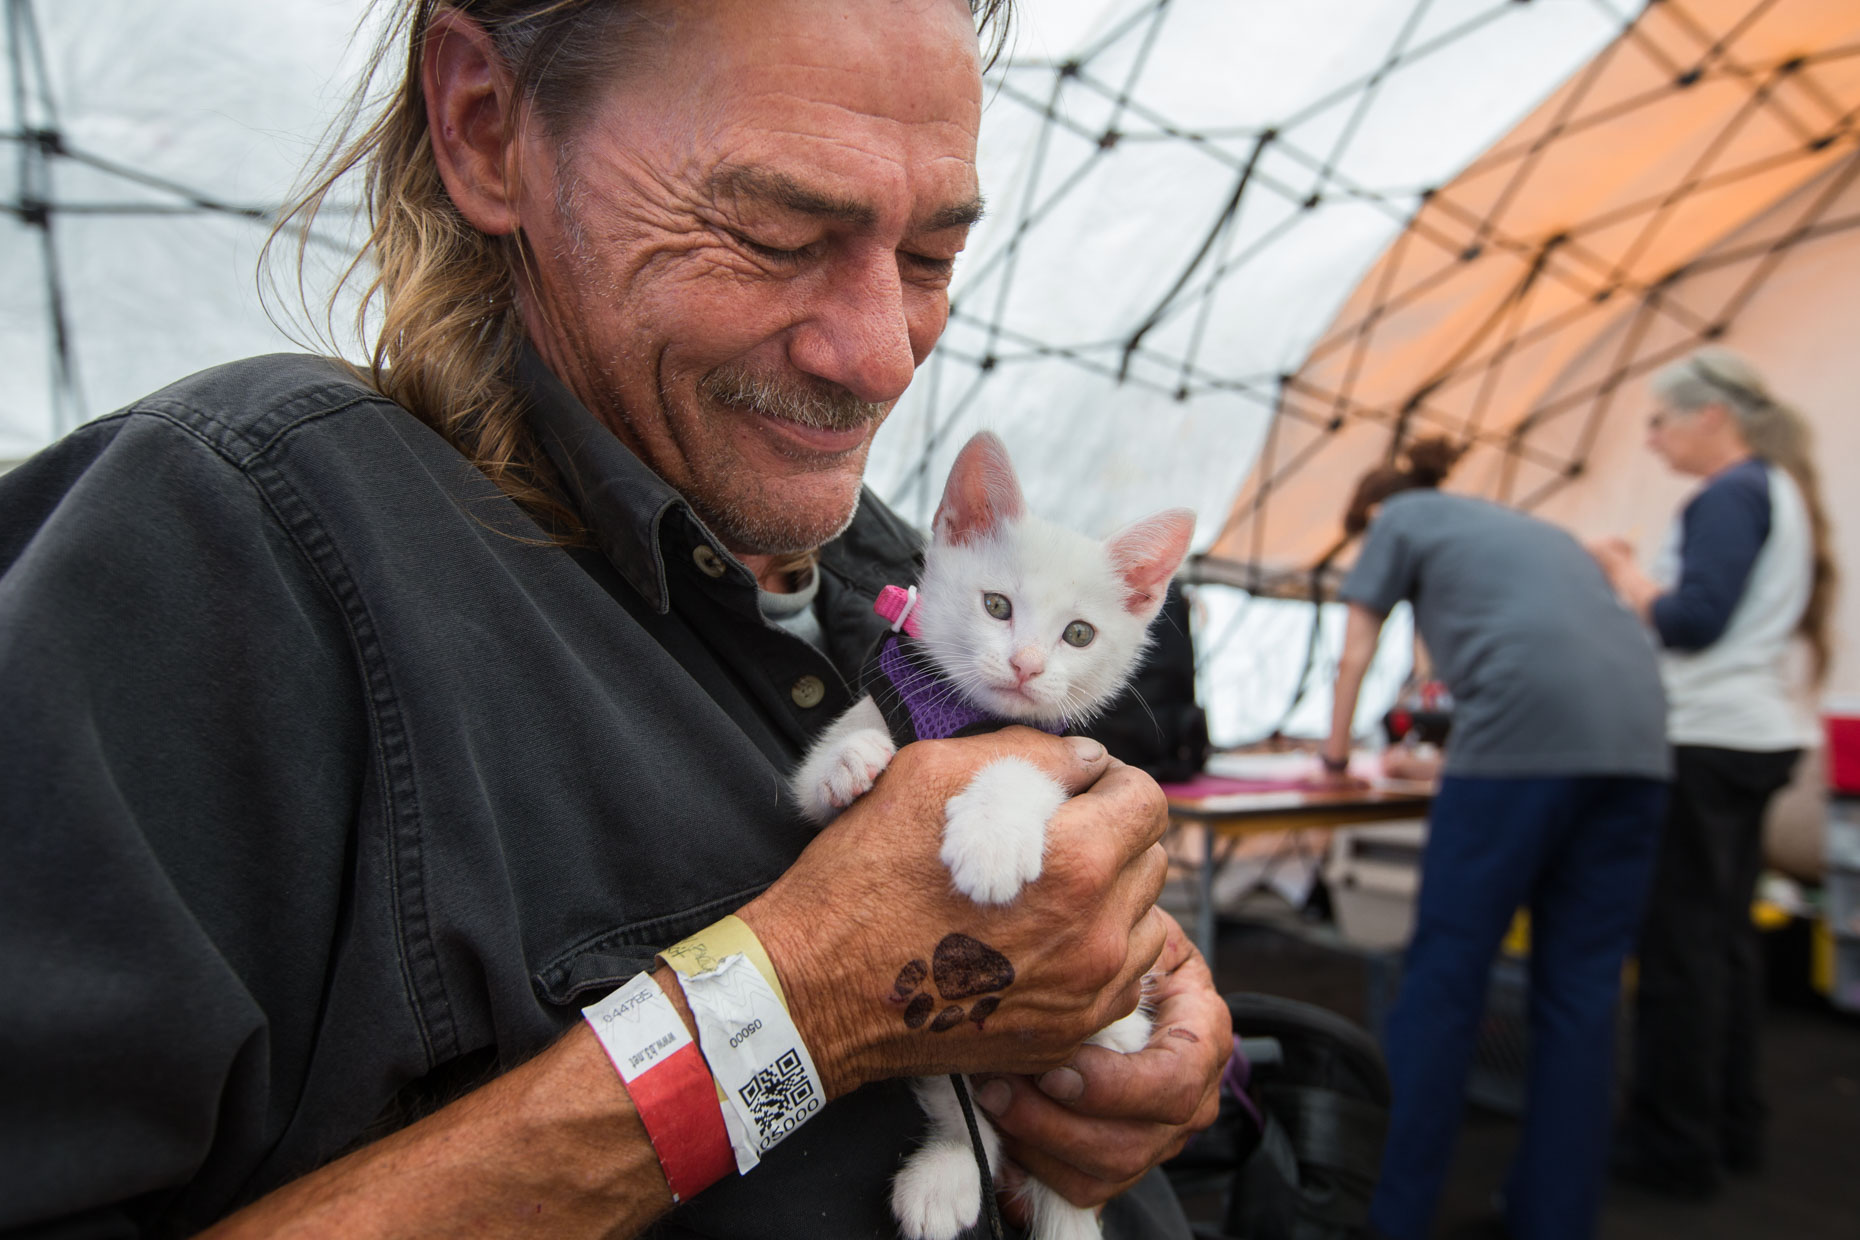 Editorial Photography | Homeless Man Holding Kitten by Mark Rogers